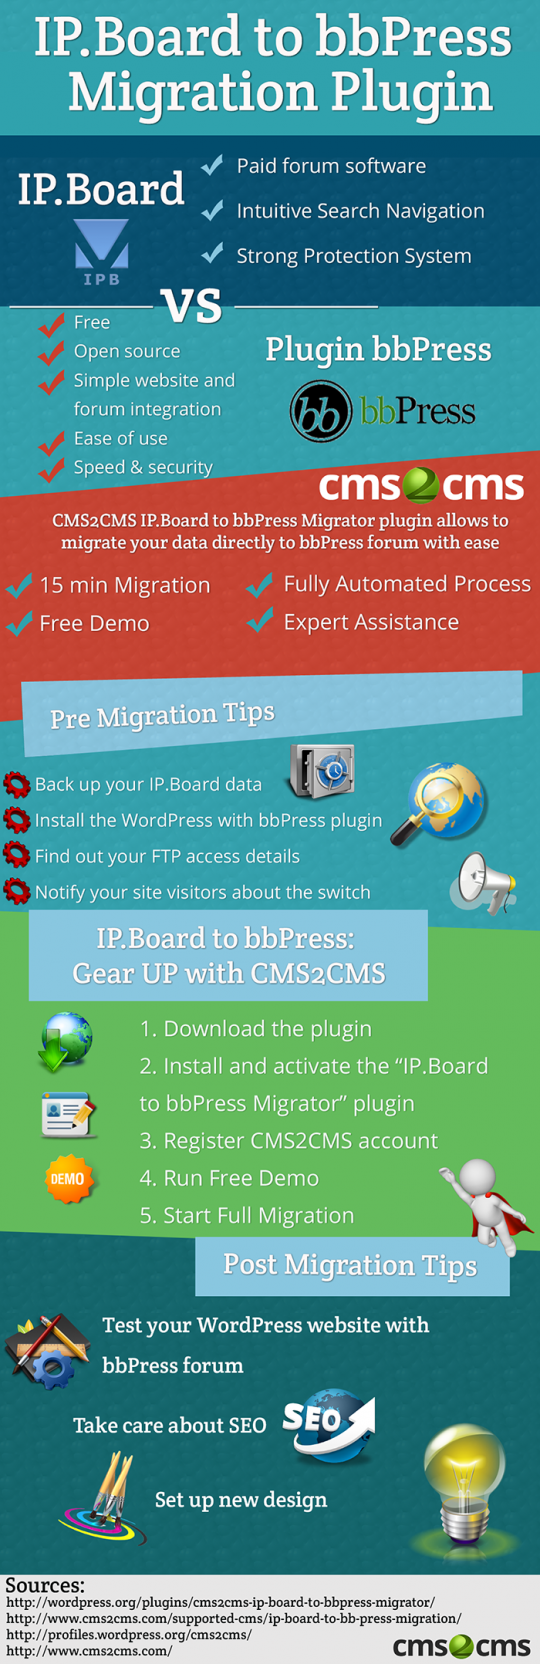 IP.Board to bbPress Migration Plugin: Why and How